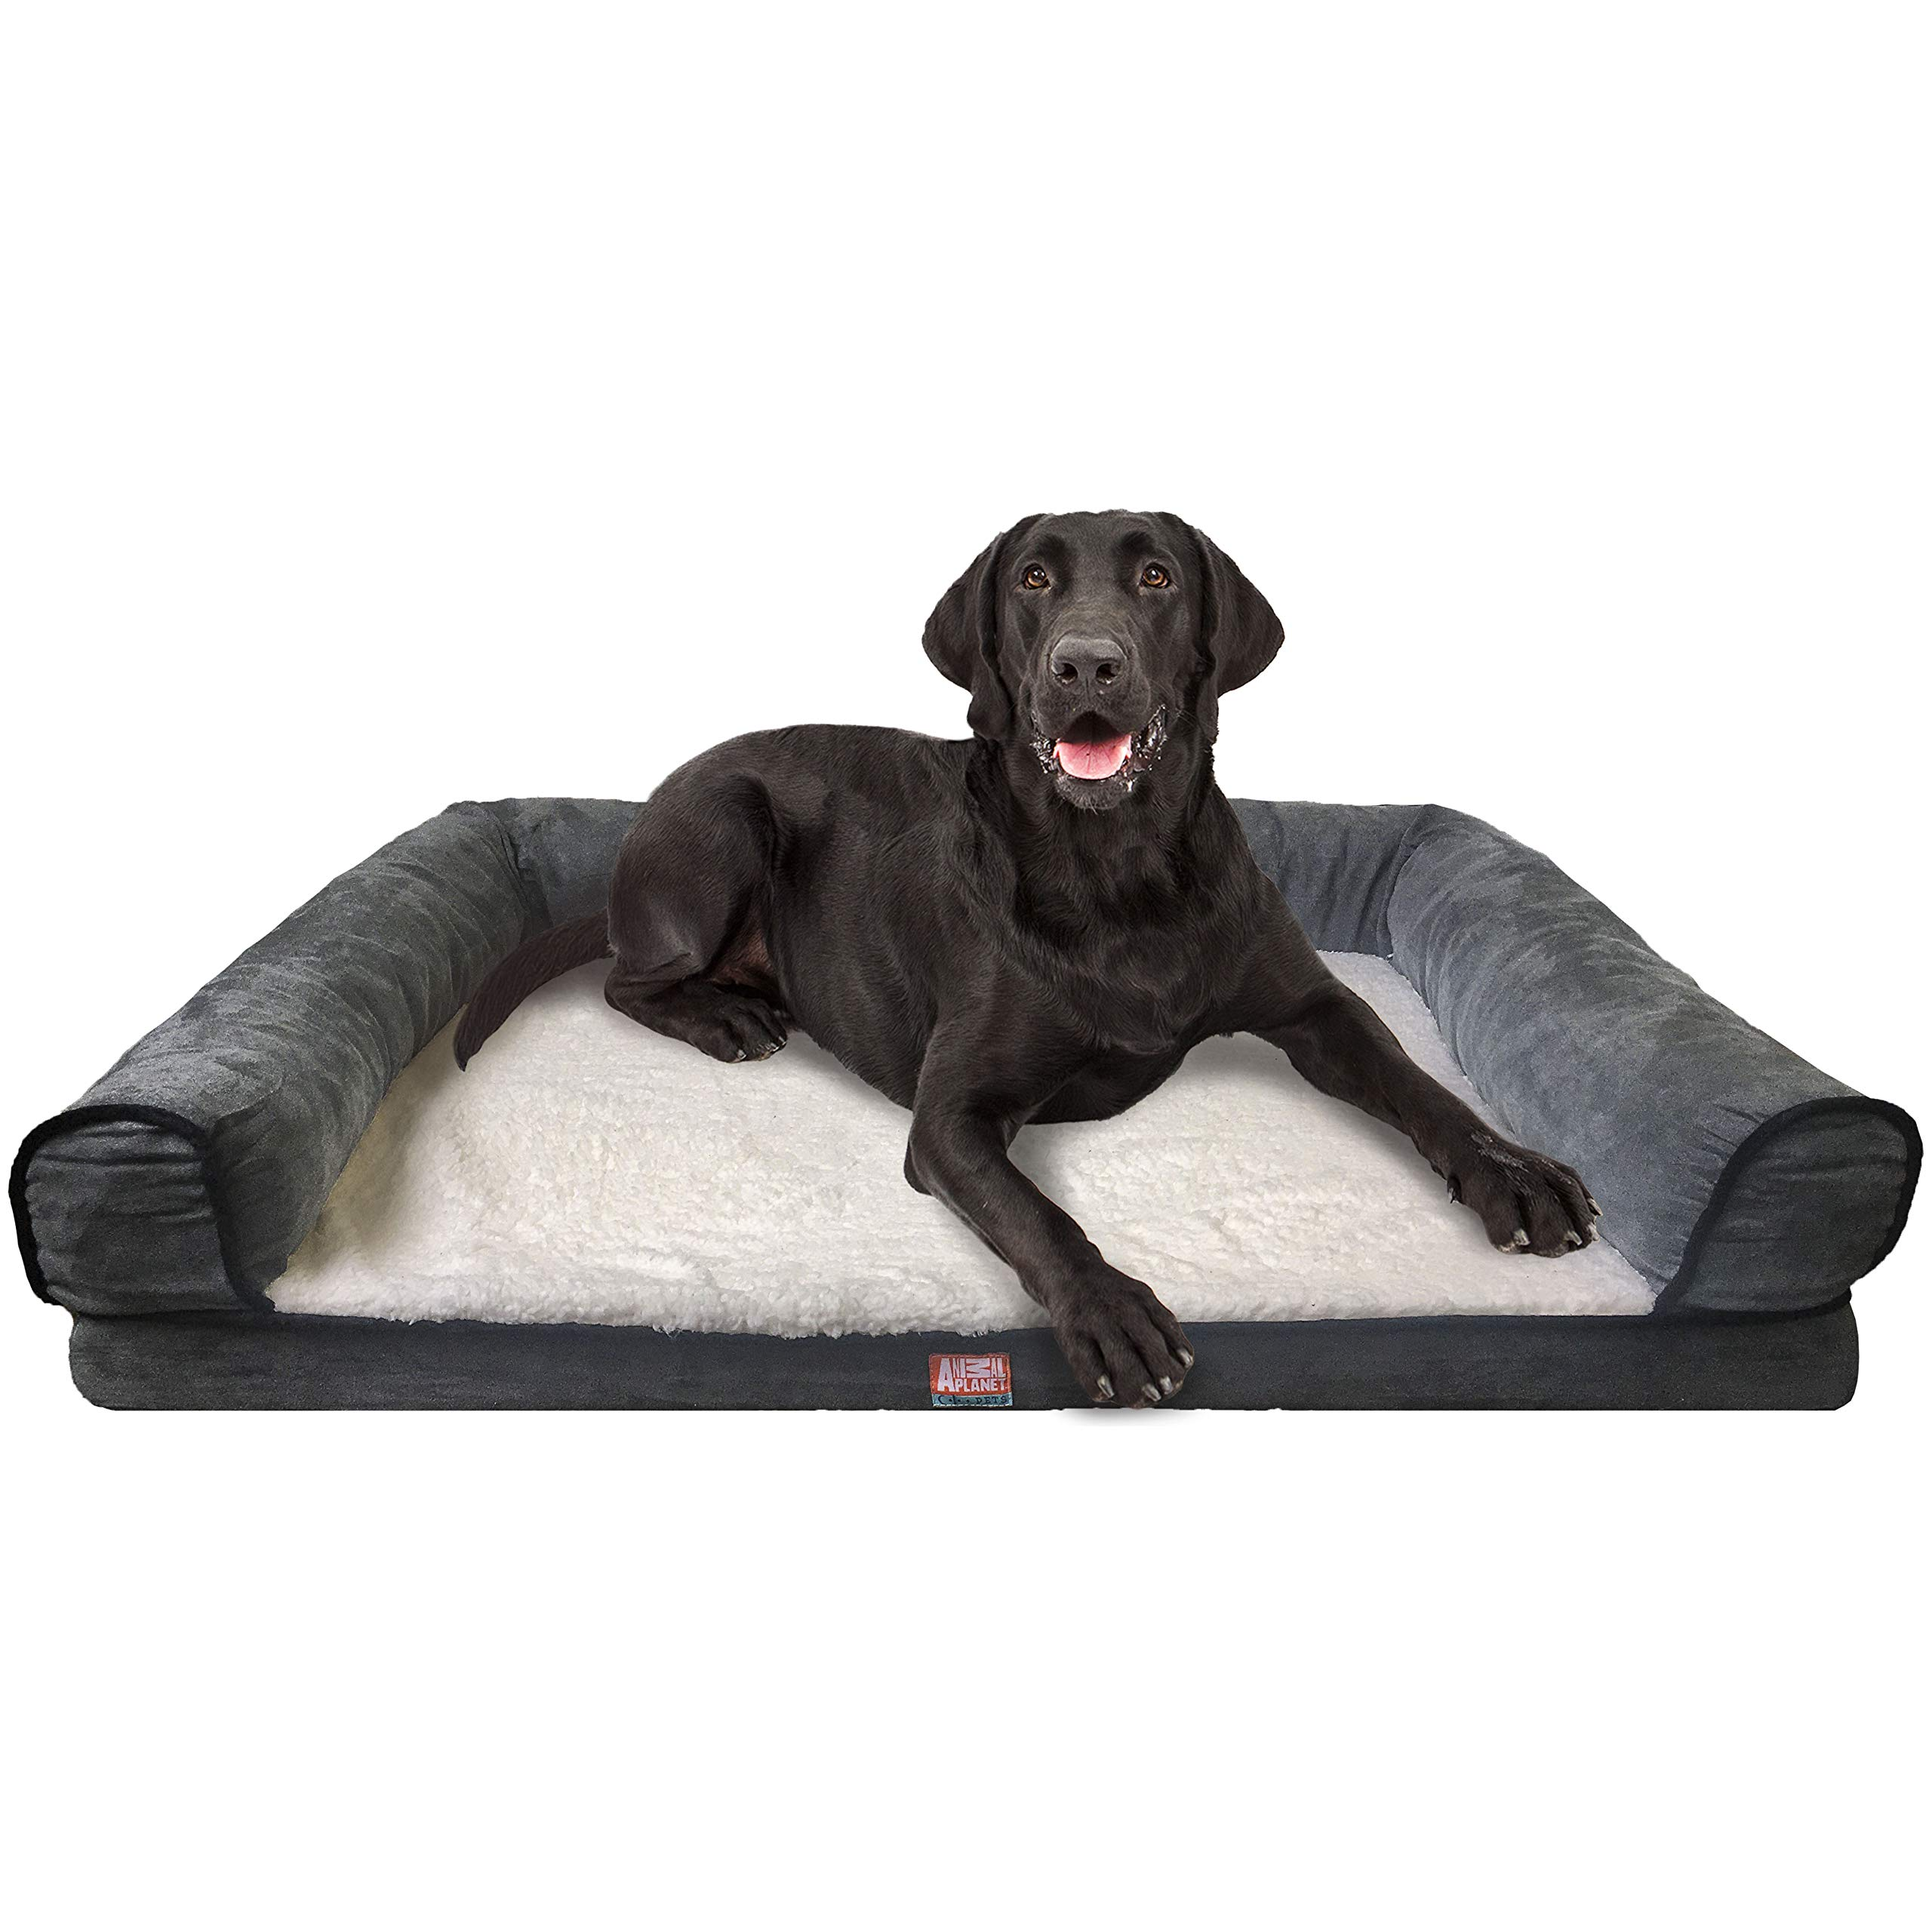 Animal Planet Orthopedic Luxury Dog Bed - Premium Memory Foam Pet Dog Sofa Bed Lounger with Washable Cover - for Dogs & Cats, Jumbo, Grey